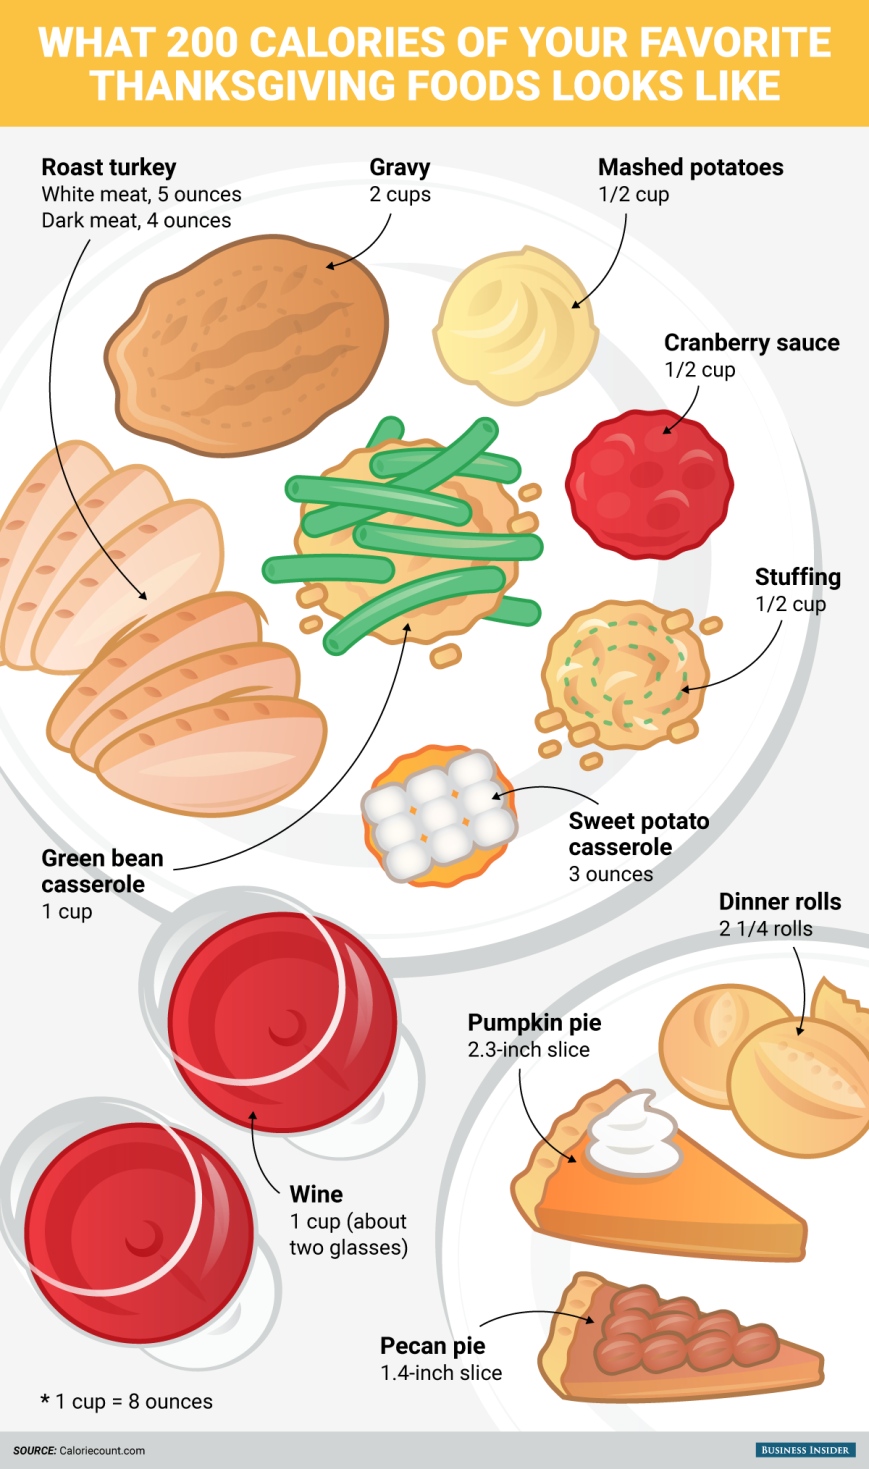 thanksgiving-foods-200-calories